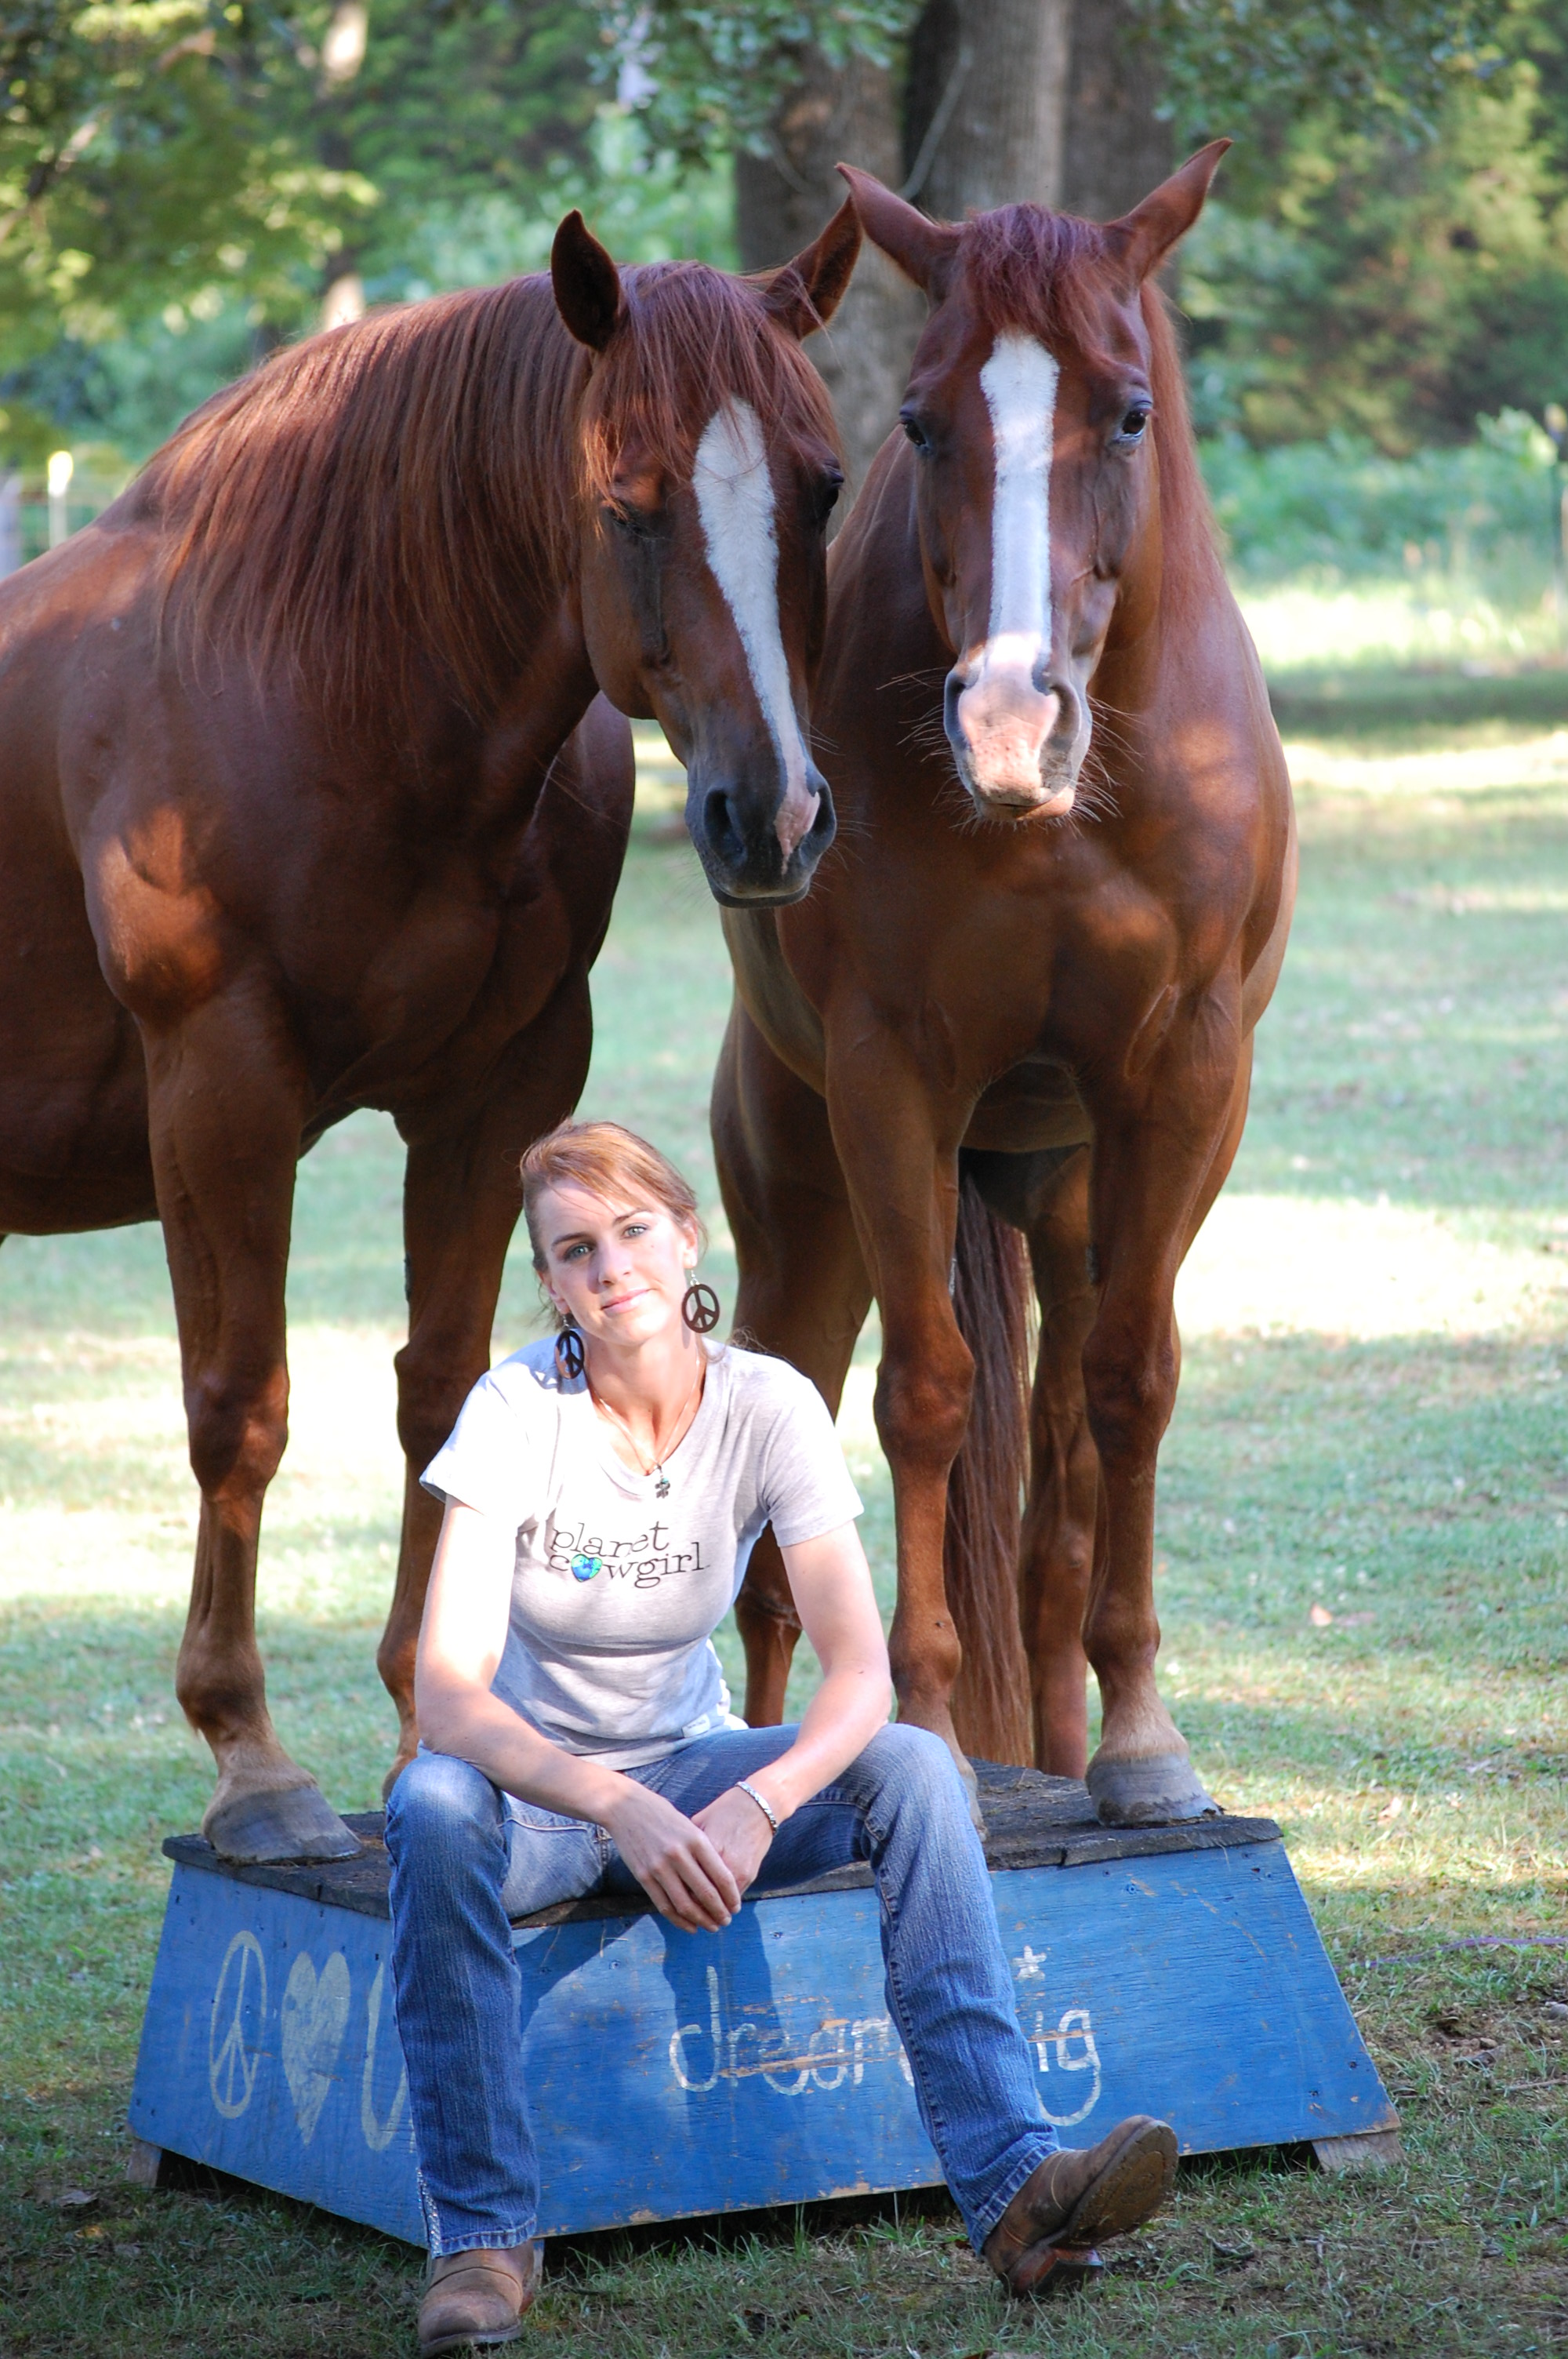 Templeton Thomposon and her horses, Jane and Beau.